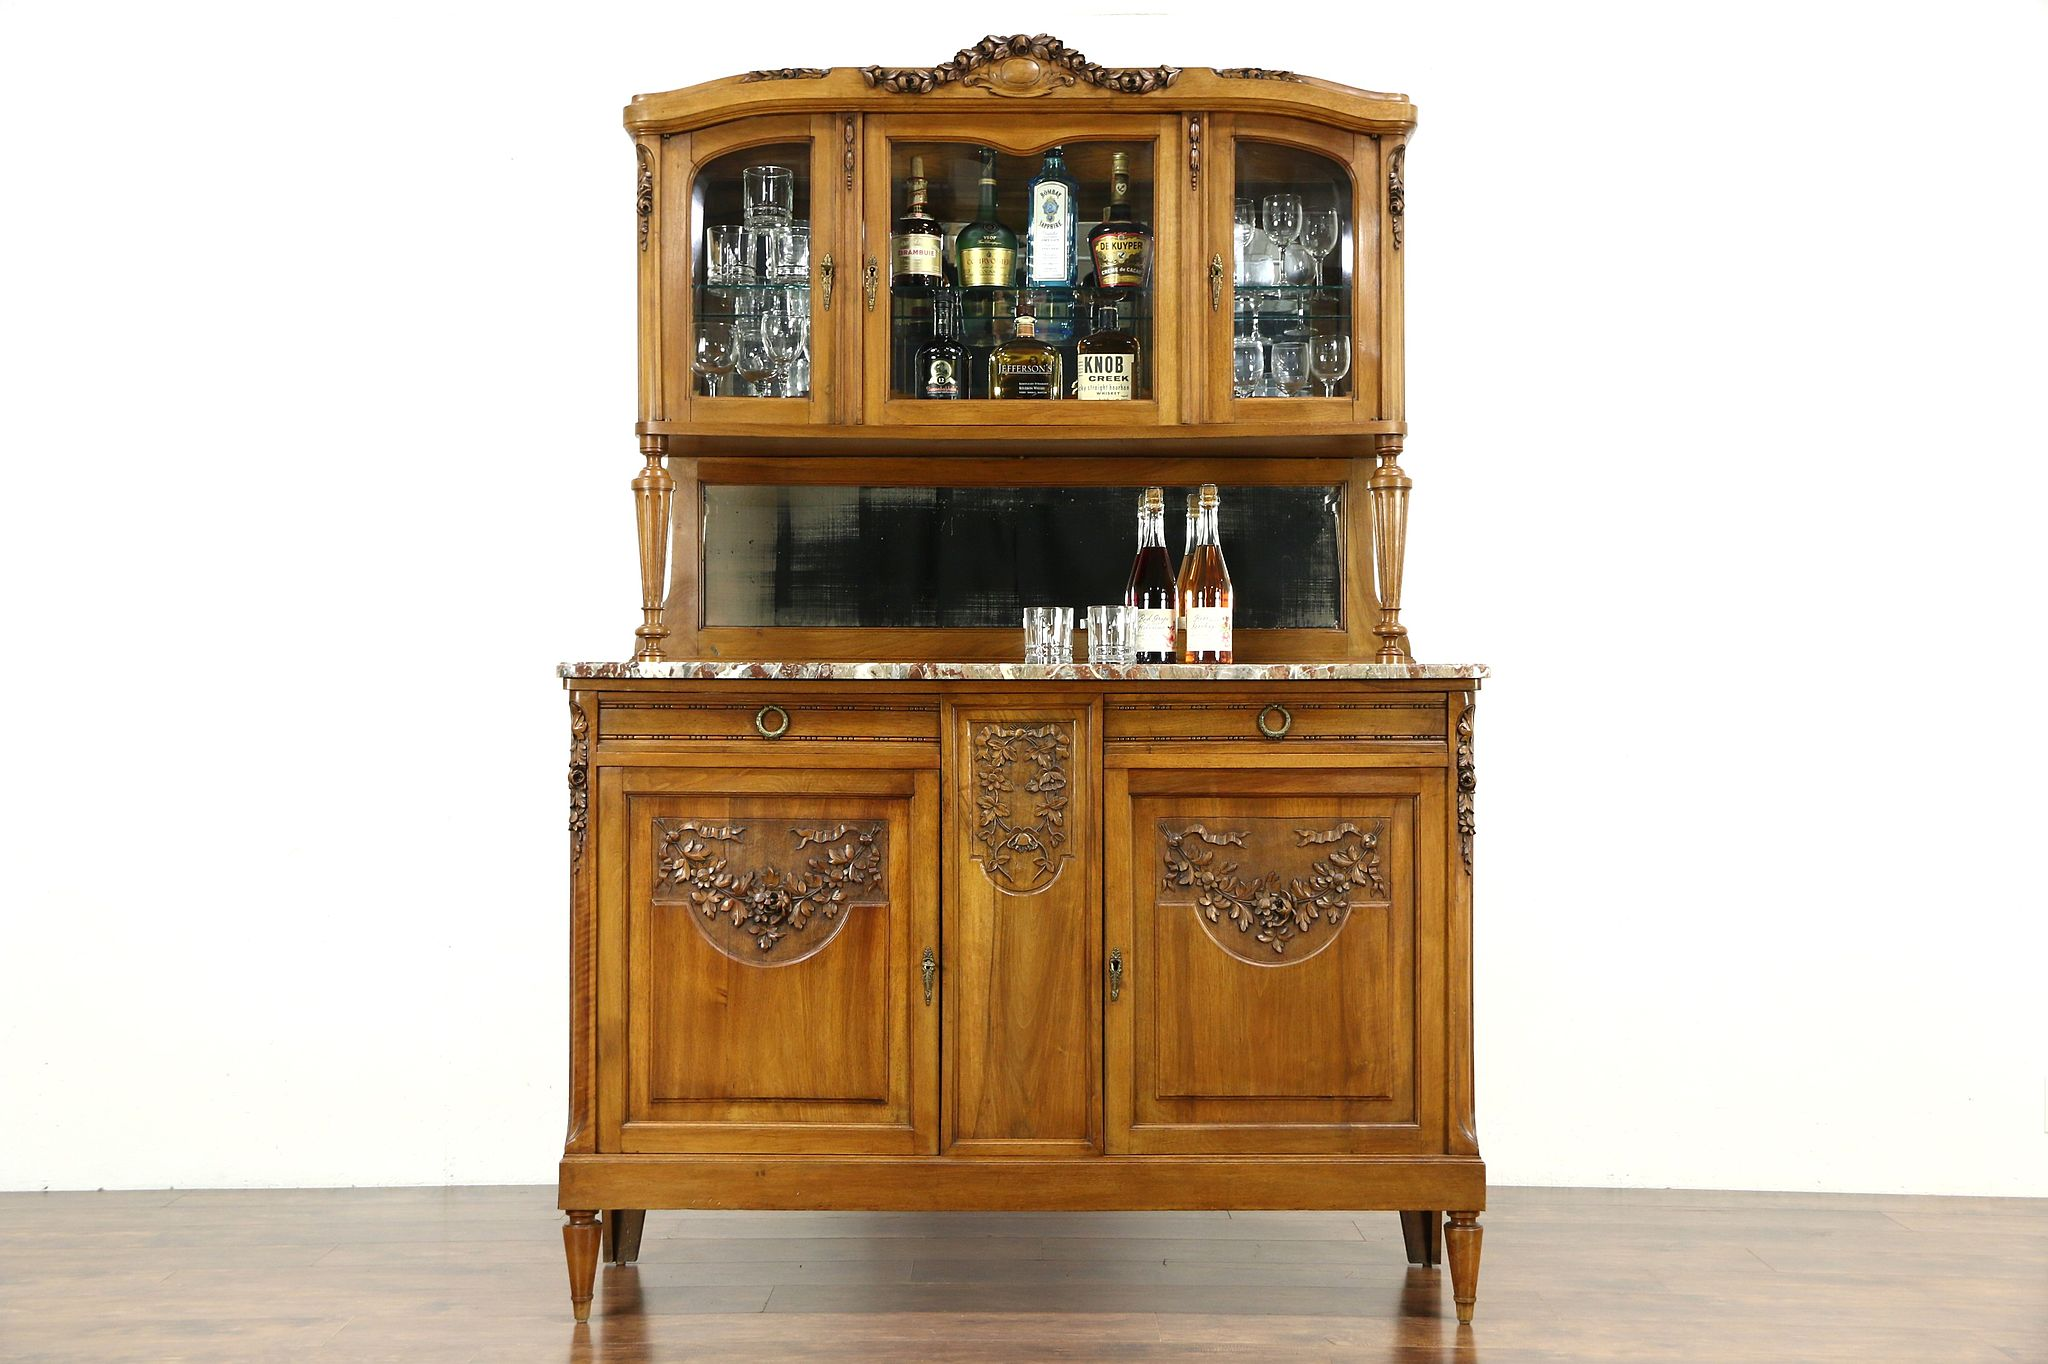 Merveilleux French Antique Carved Sideboard U0026 China Cabinet, Marble Top, Beveled Glass